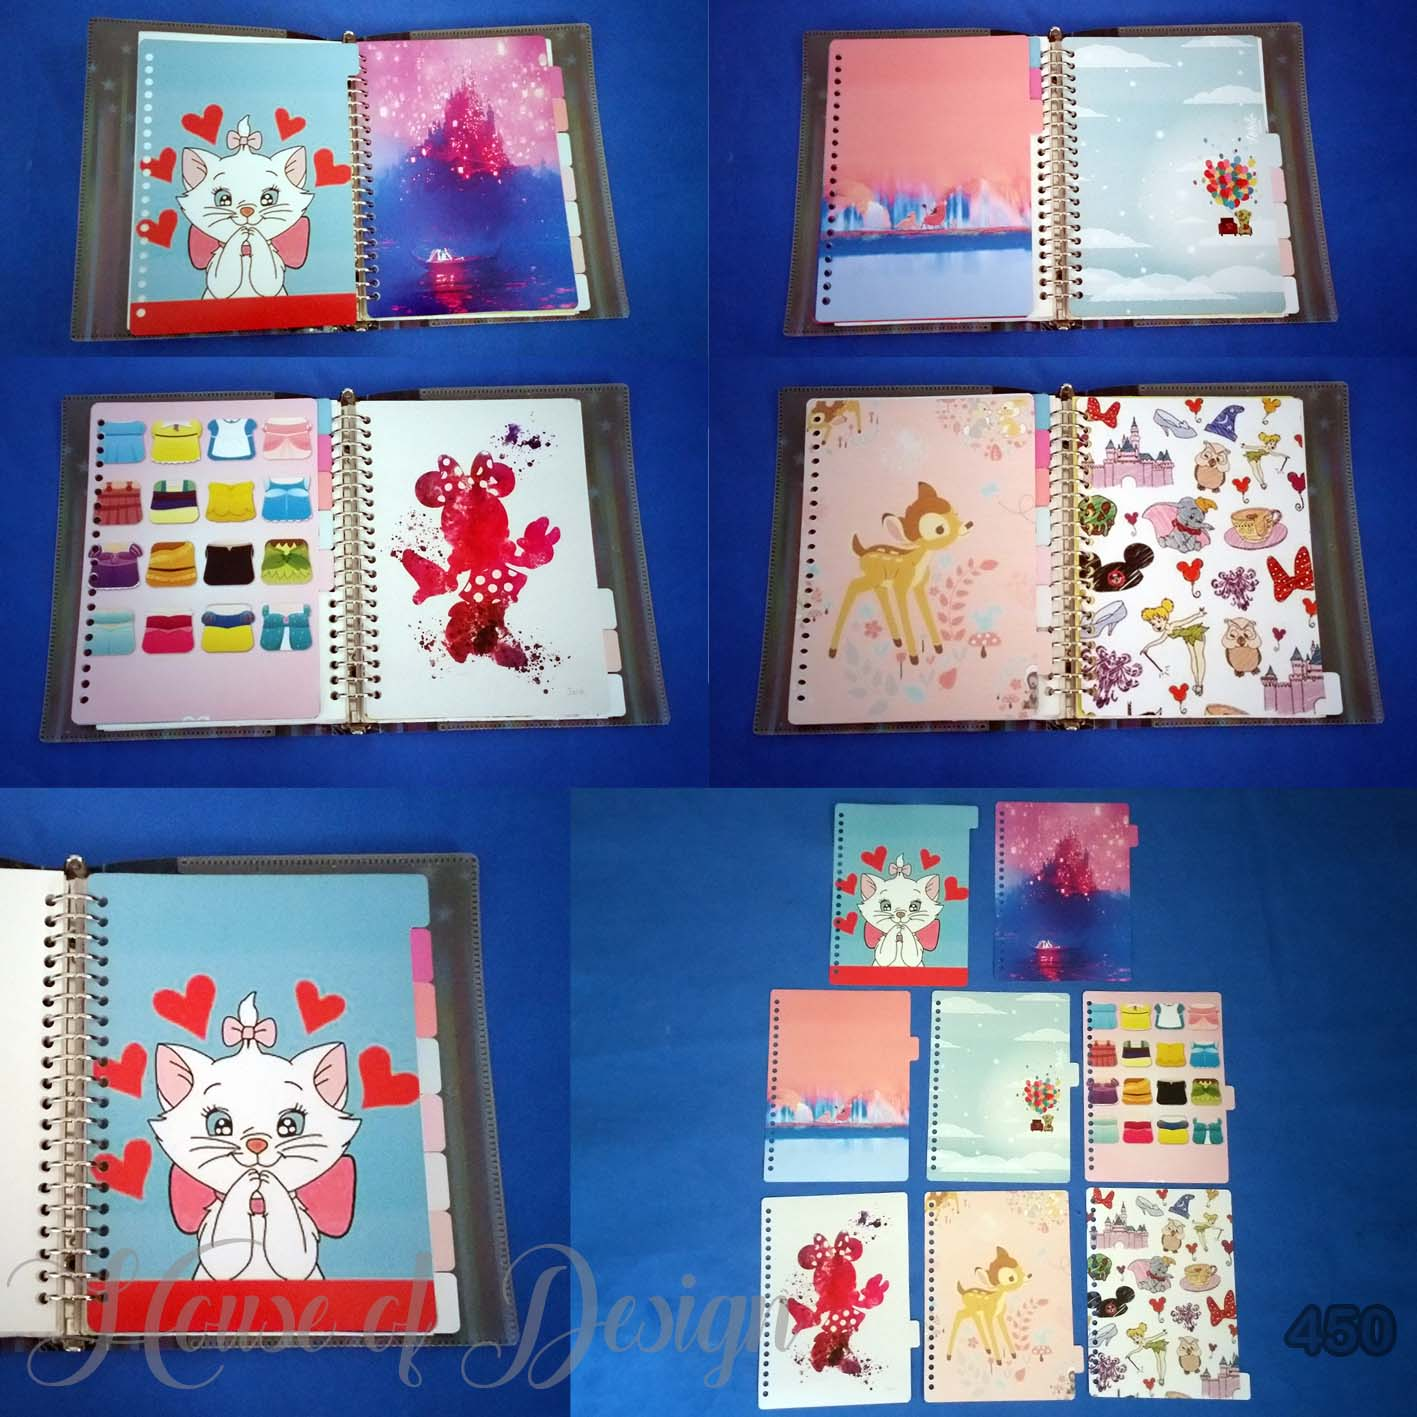 PEMBATAS SAMPING BINDER 20 RING UKURAN A5 CAT LOVER CUSTOM